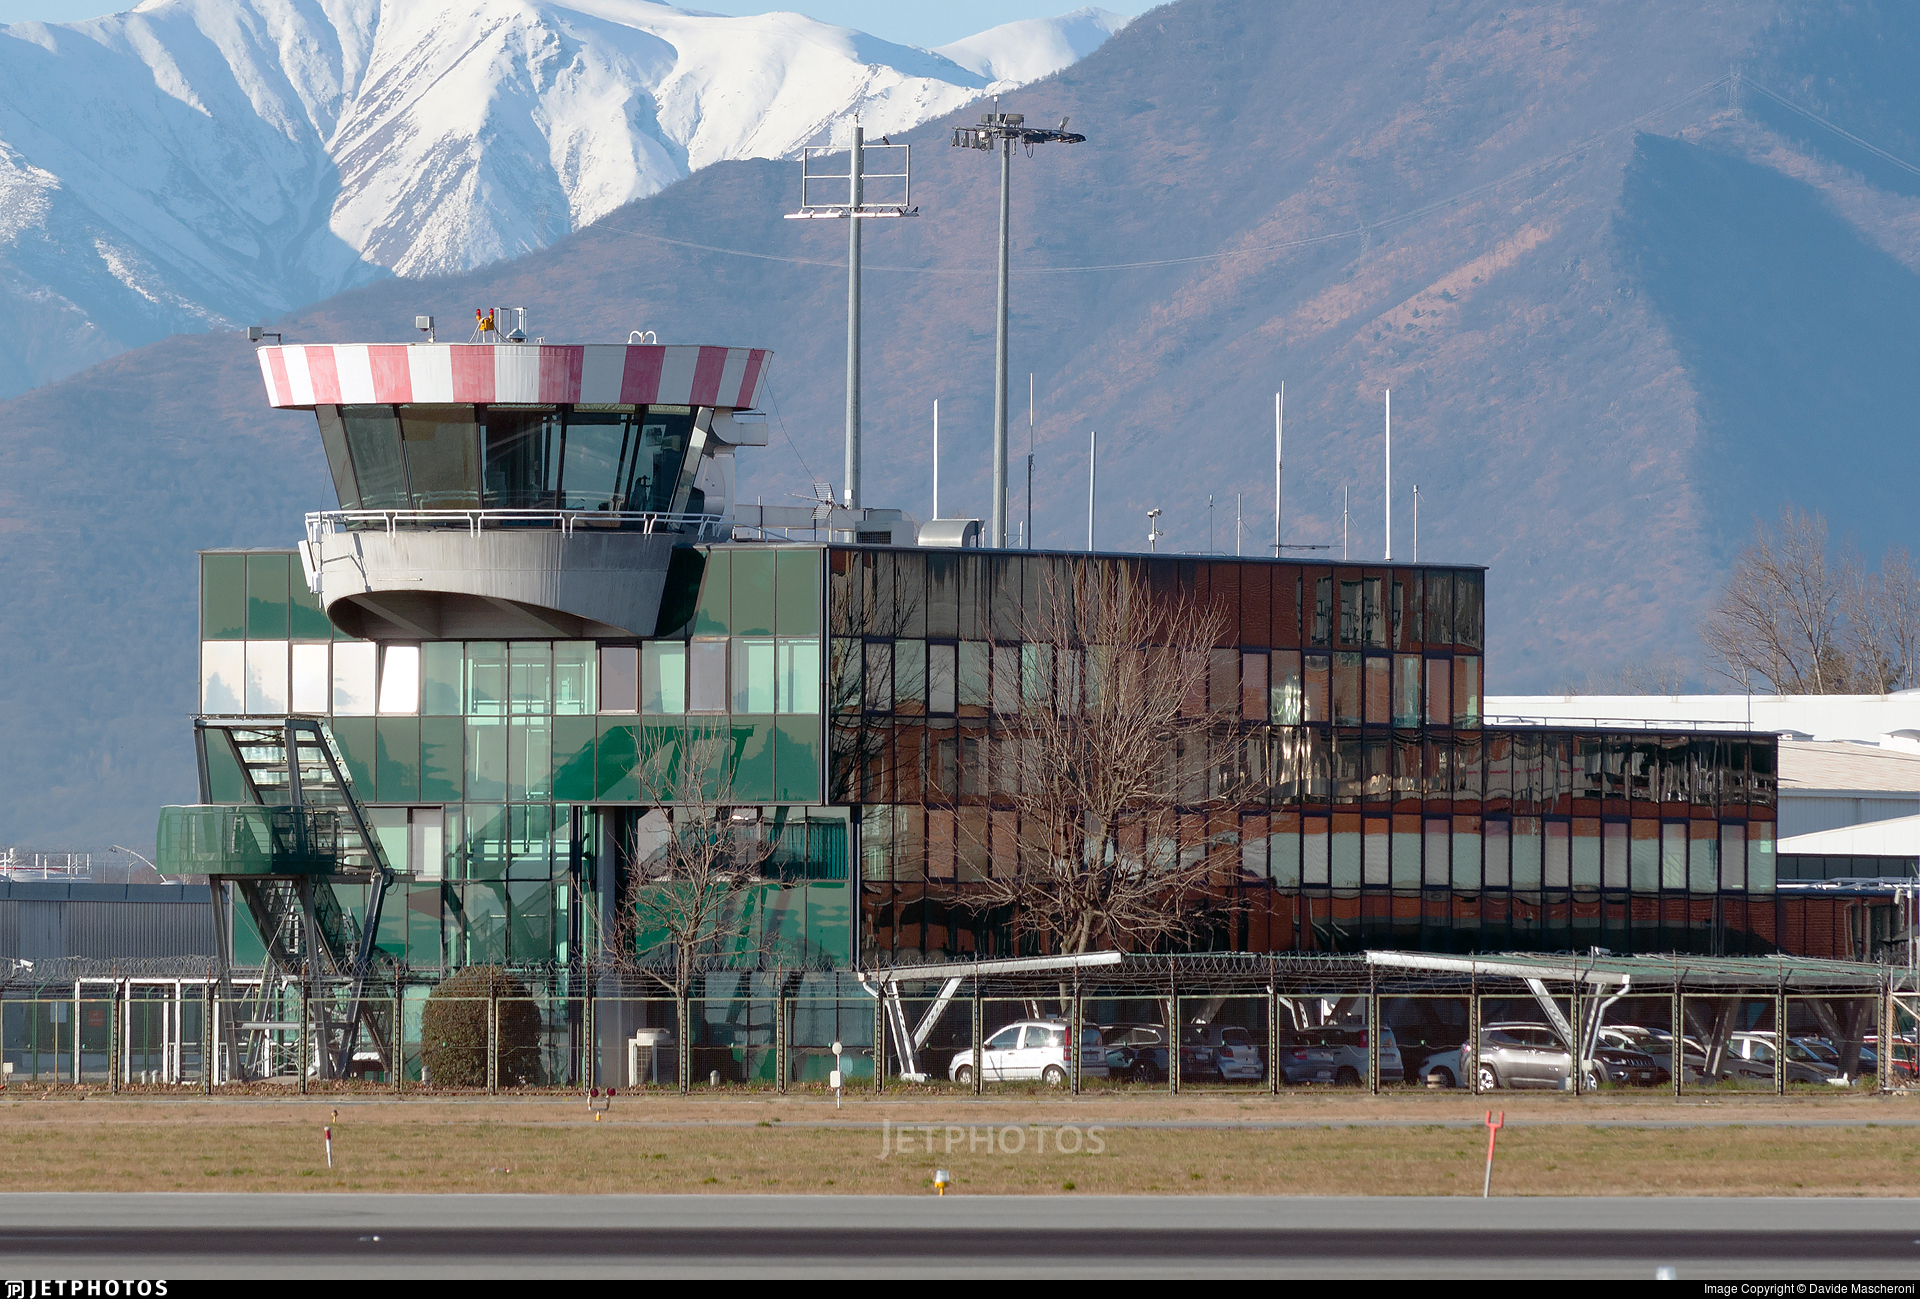 LIMF - Airport - Control Tower